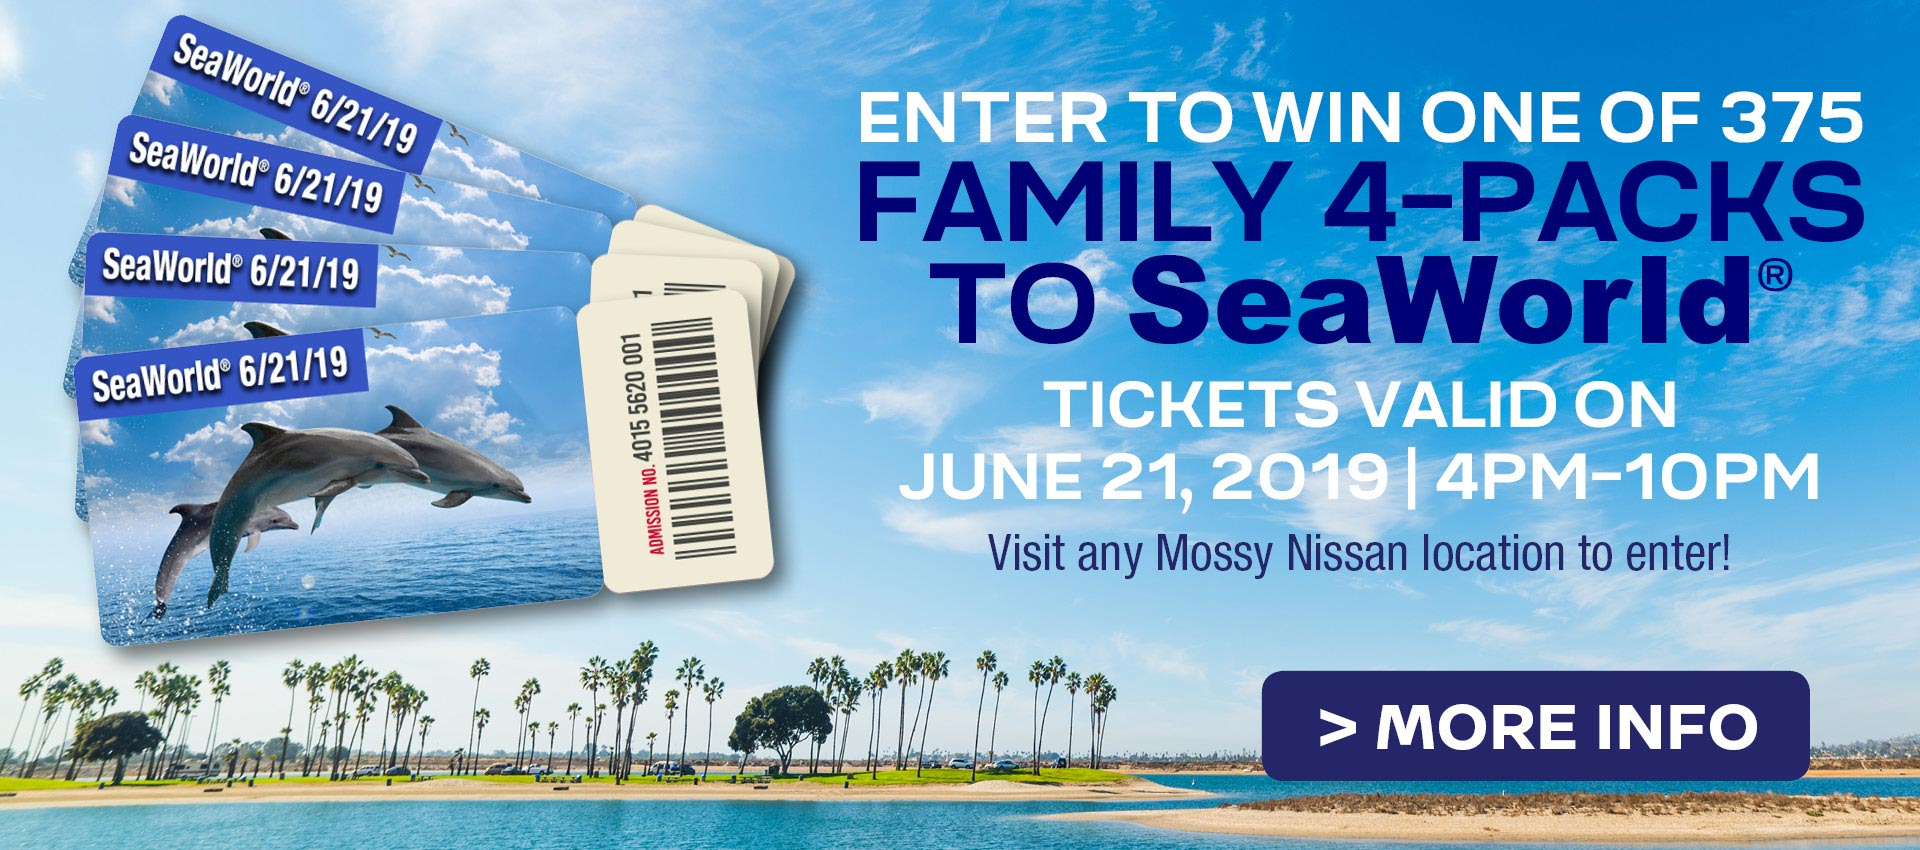 Mossy Nissan - SeaWorld Ticket Giveaway HP